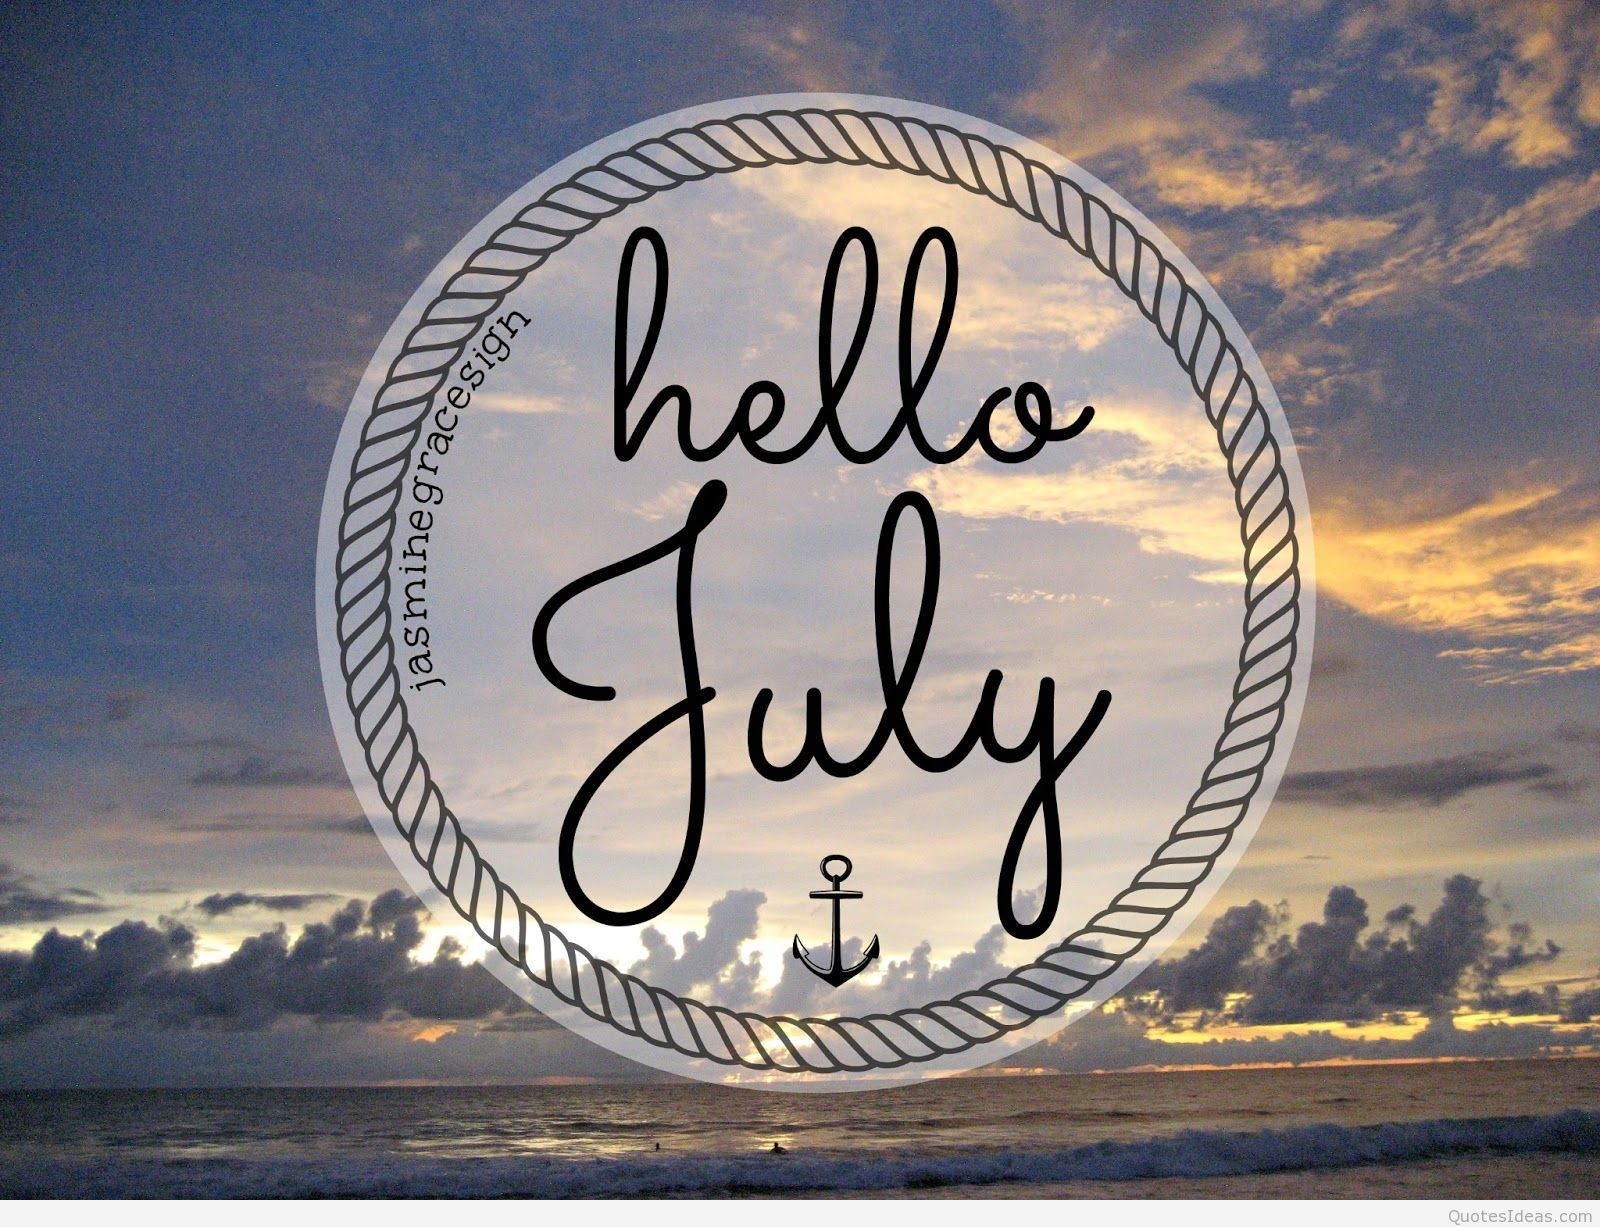 1600x1227 Awesome hello July photos, sayings, quotes wallpapers hd